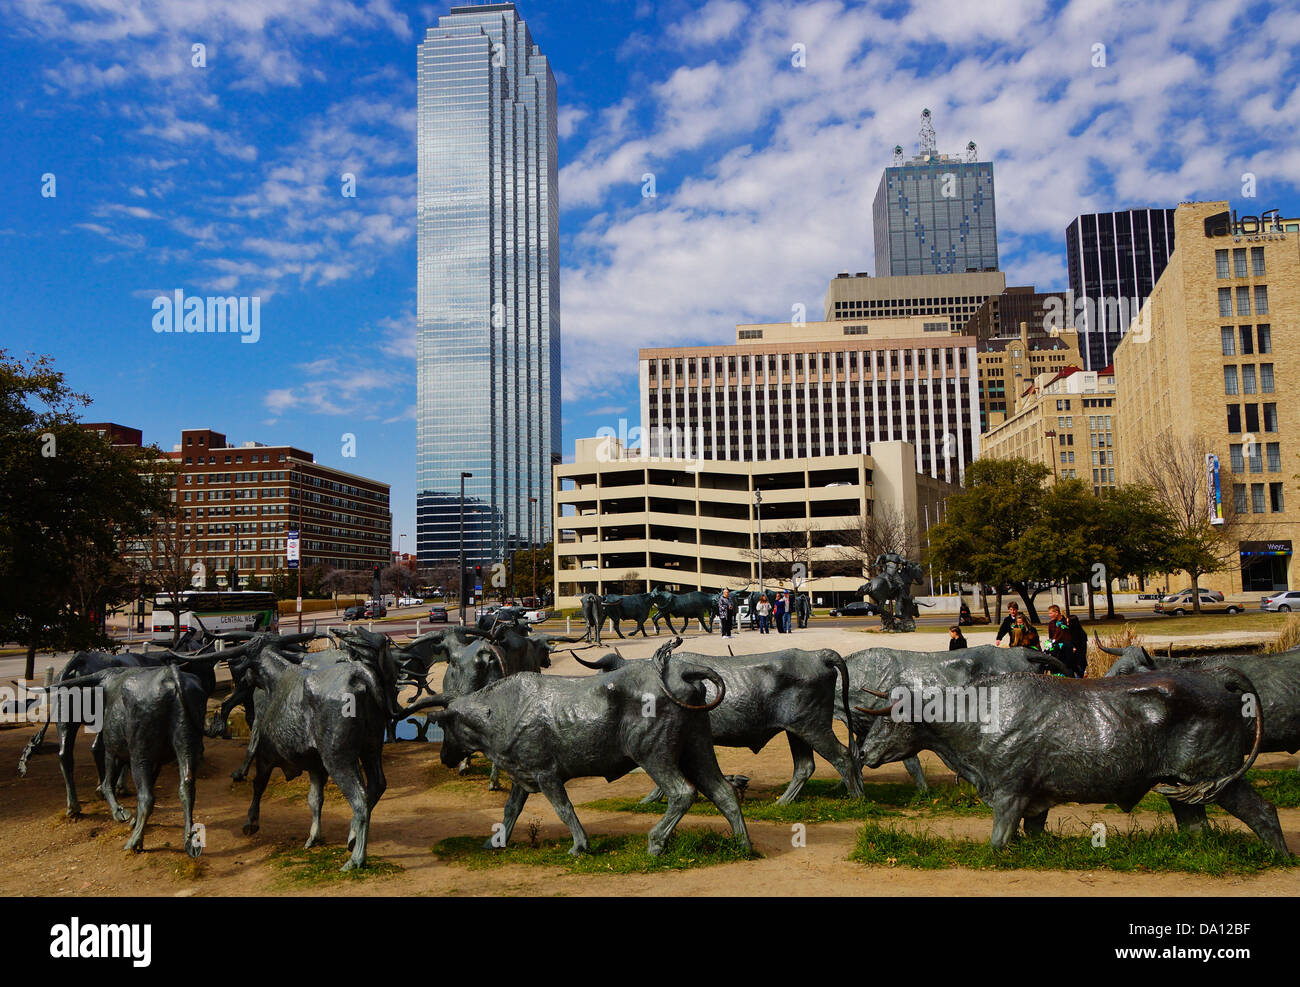 Pioneer Plaza Cattle Drive in Dallas Texas - Stock Image